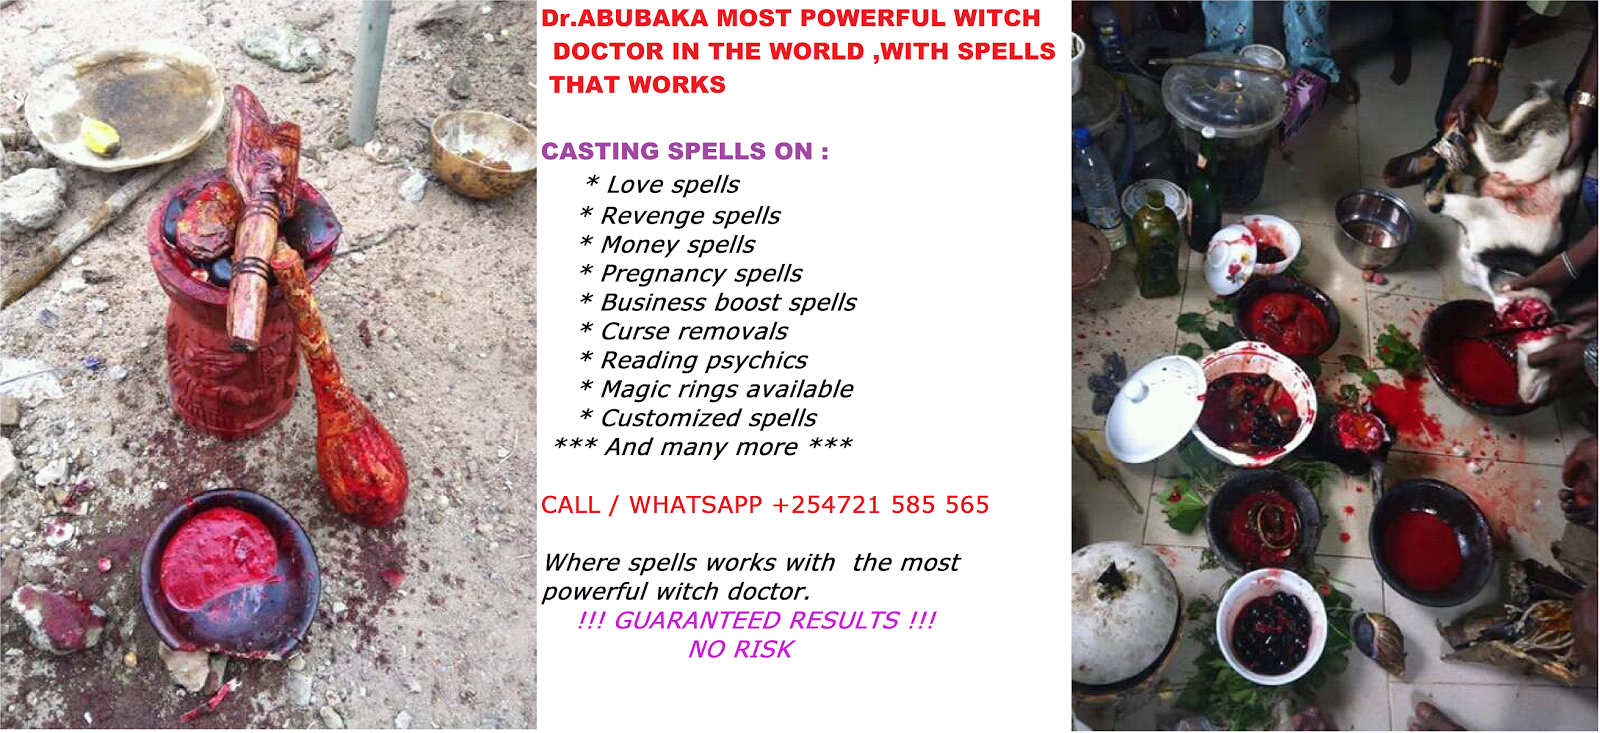 MOST POWERFUL WITCH DOCTOR SERVICES IN KENYA/USA/UK +254721